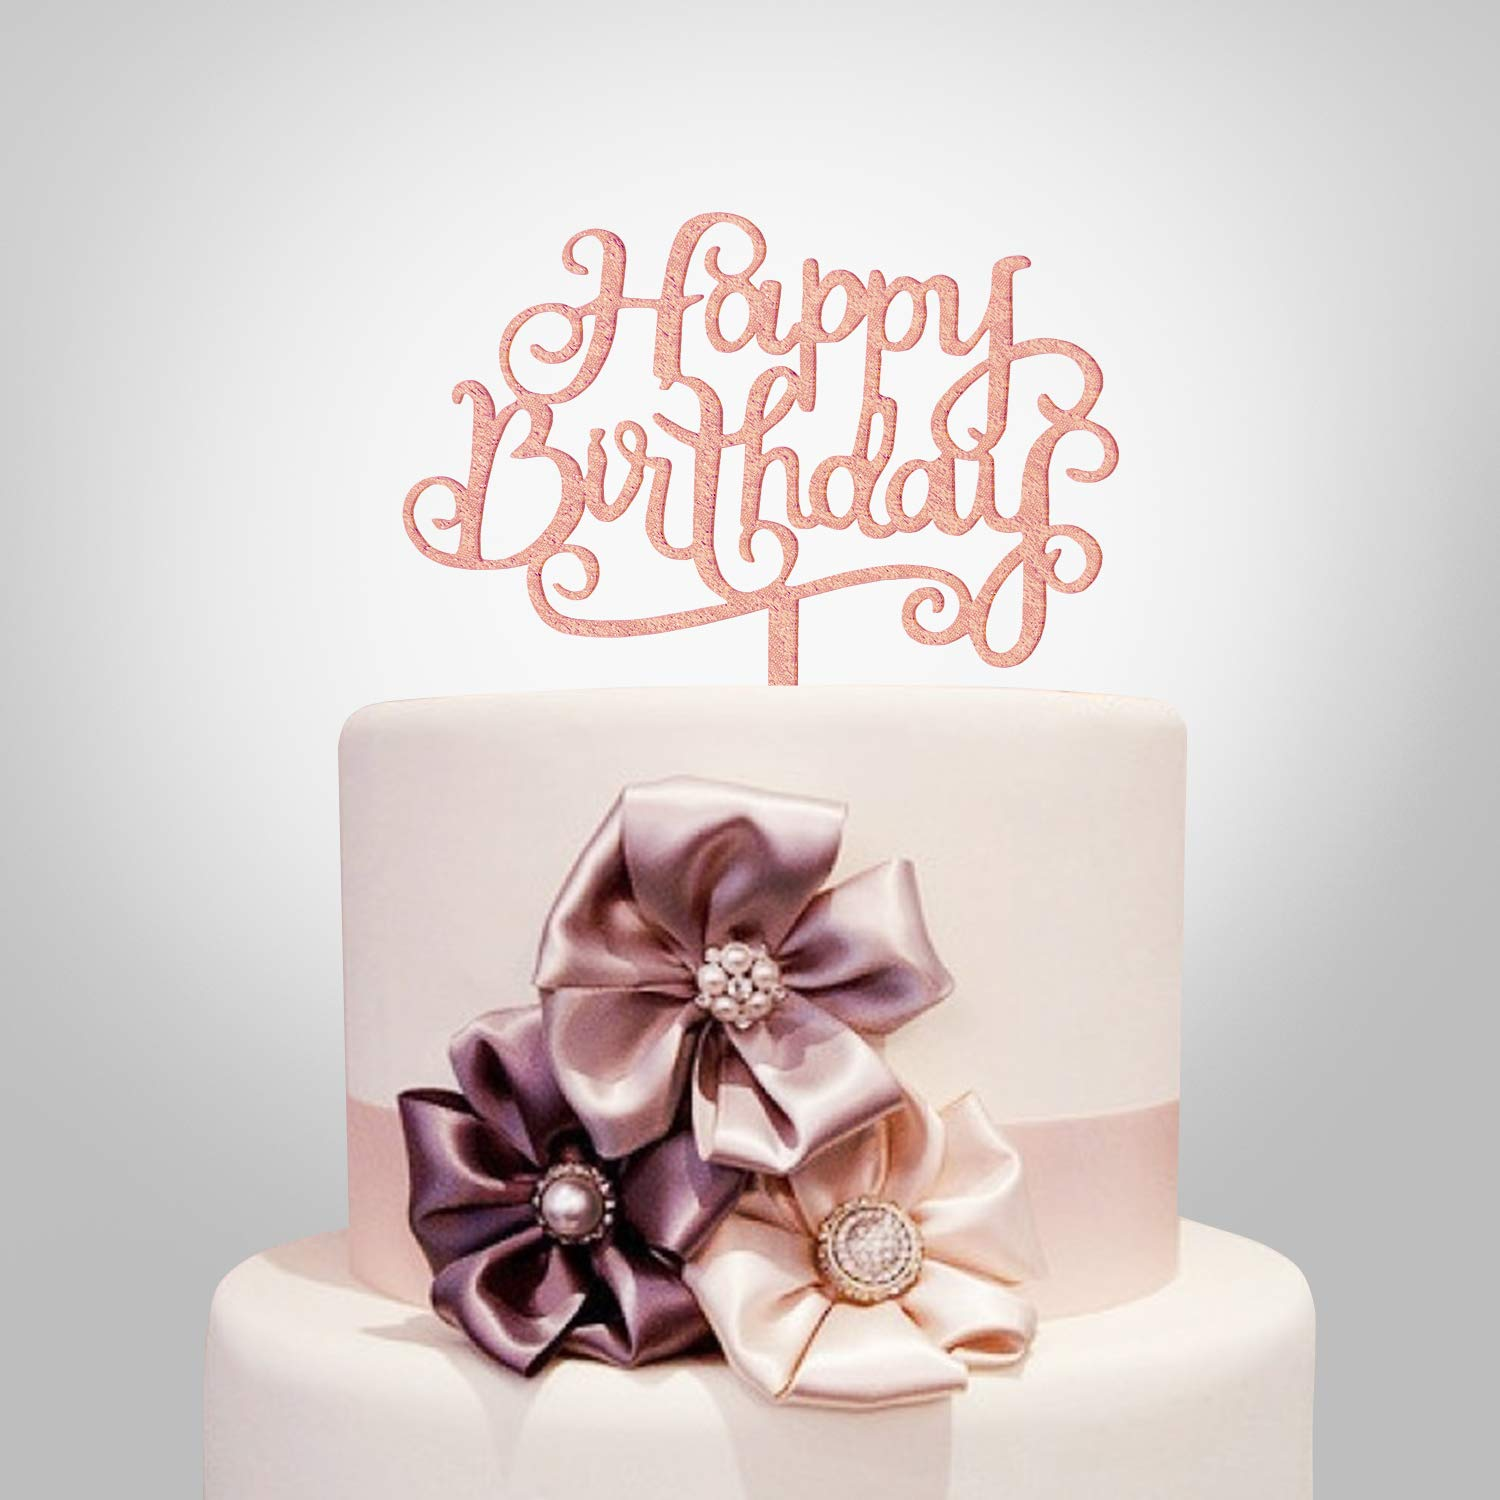 Happy Birthday Cake Topper, Rose Gold Acrylic, Calligraphy Bling Cake  Decoration Sign Party Banner